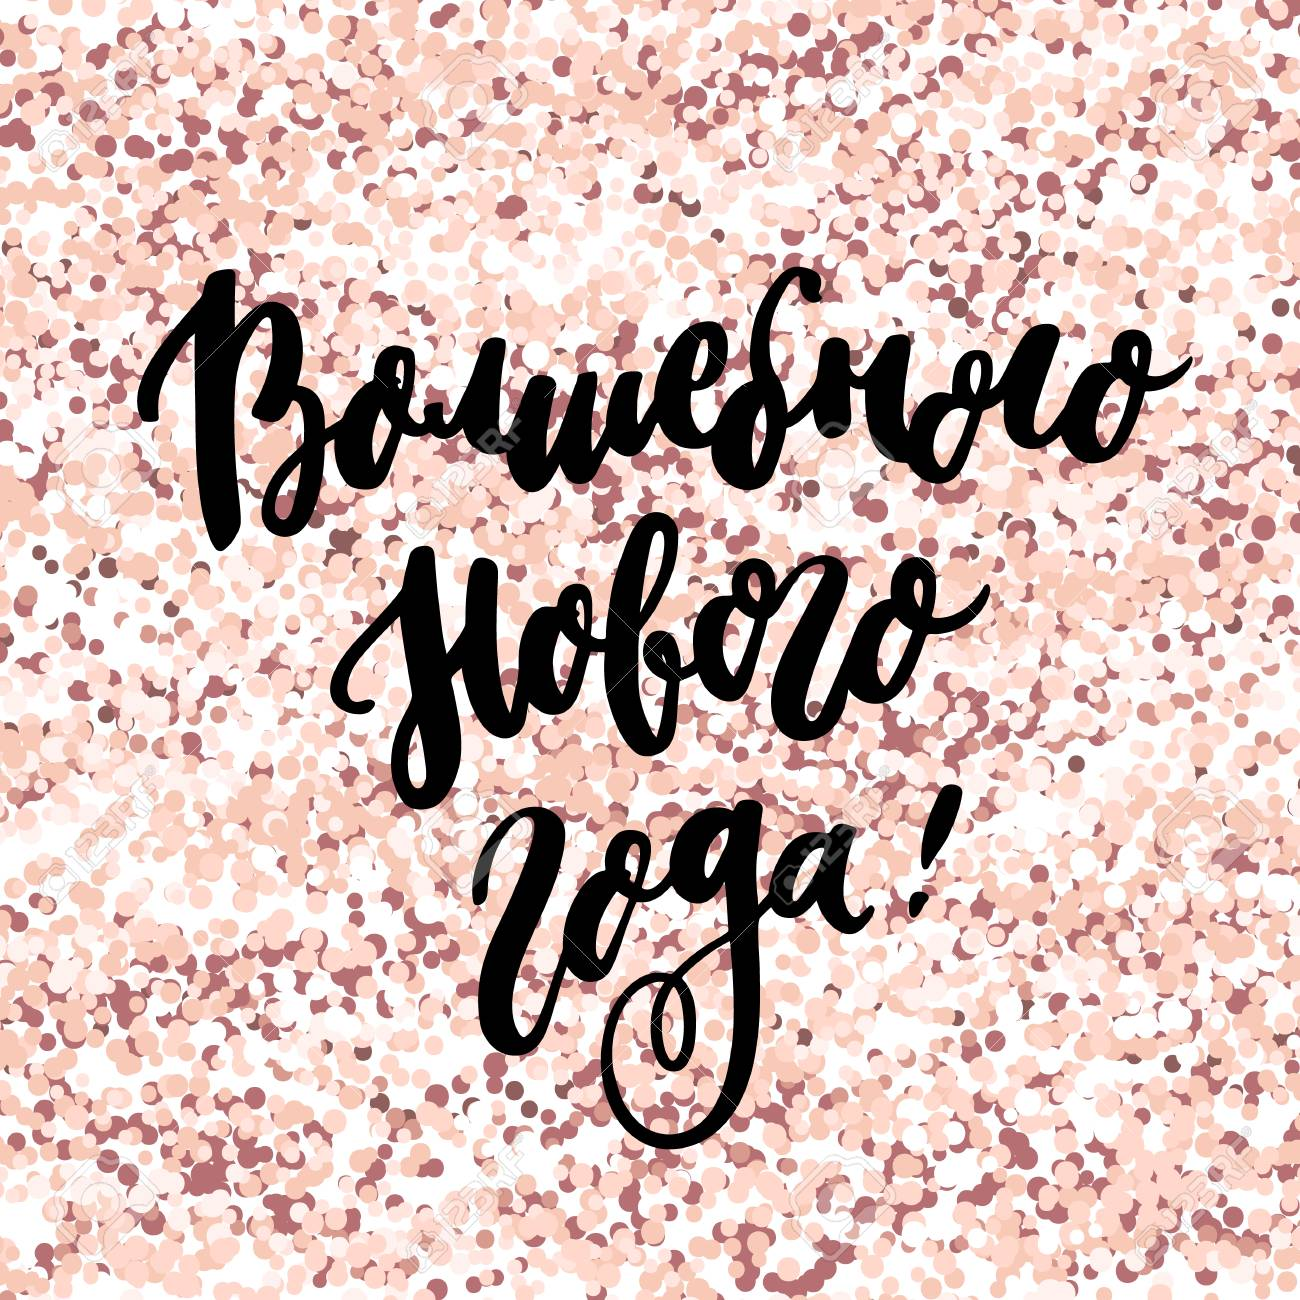 vector wish a magical new year in russian cyrillic on a pink gold glitter background in a trendy calligraphic style it can be used for card mug